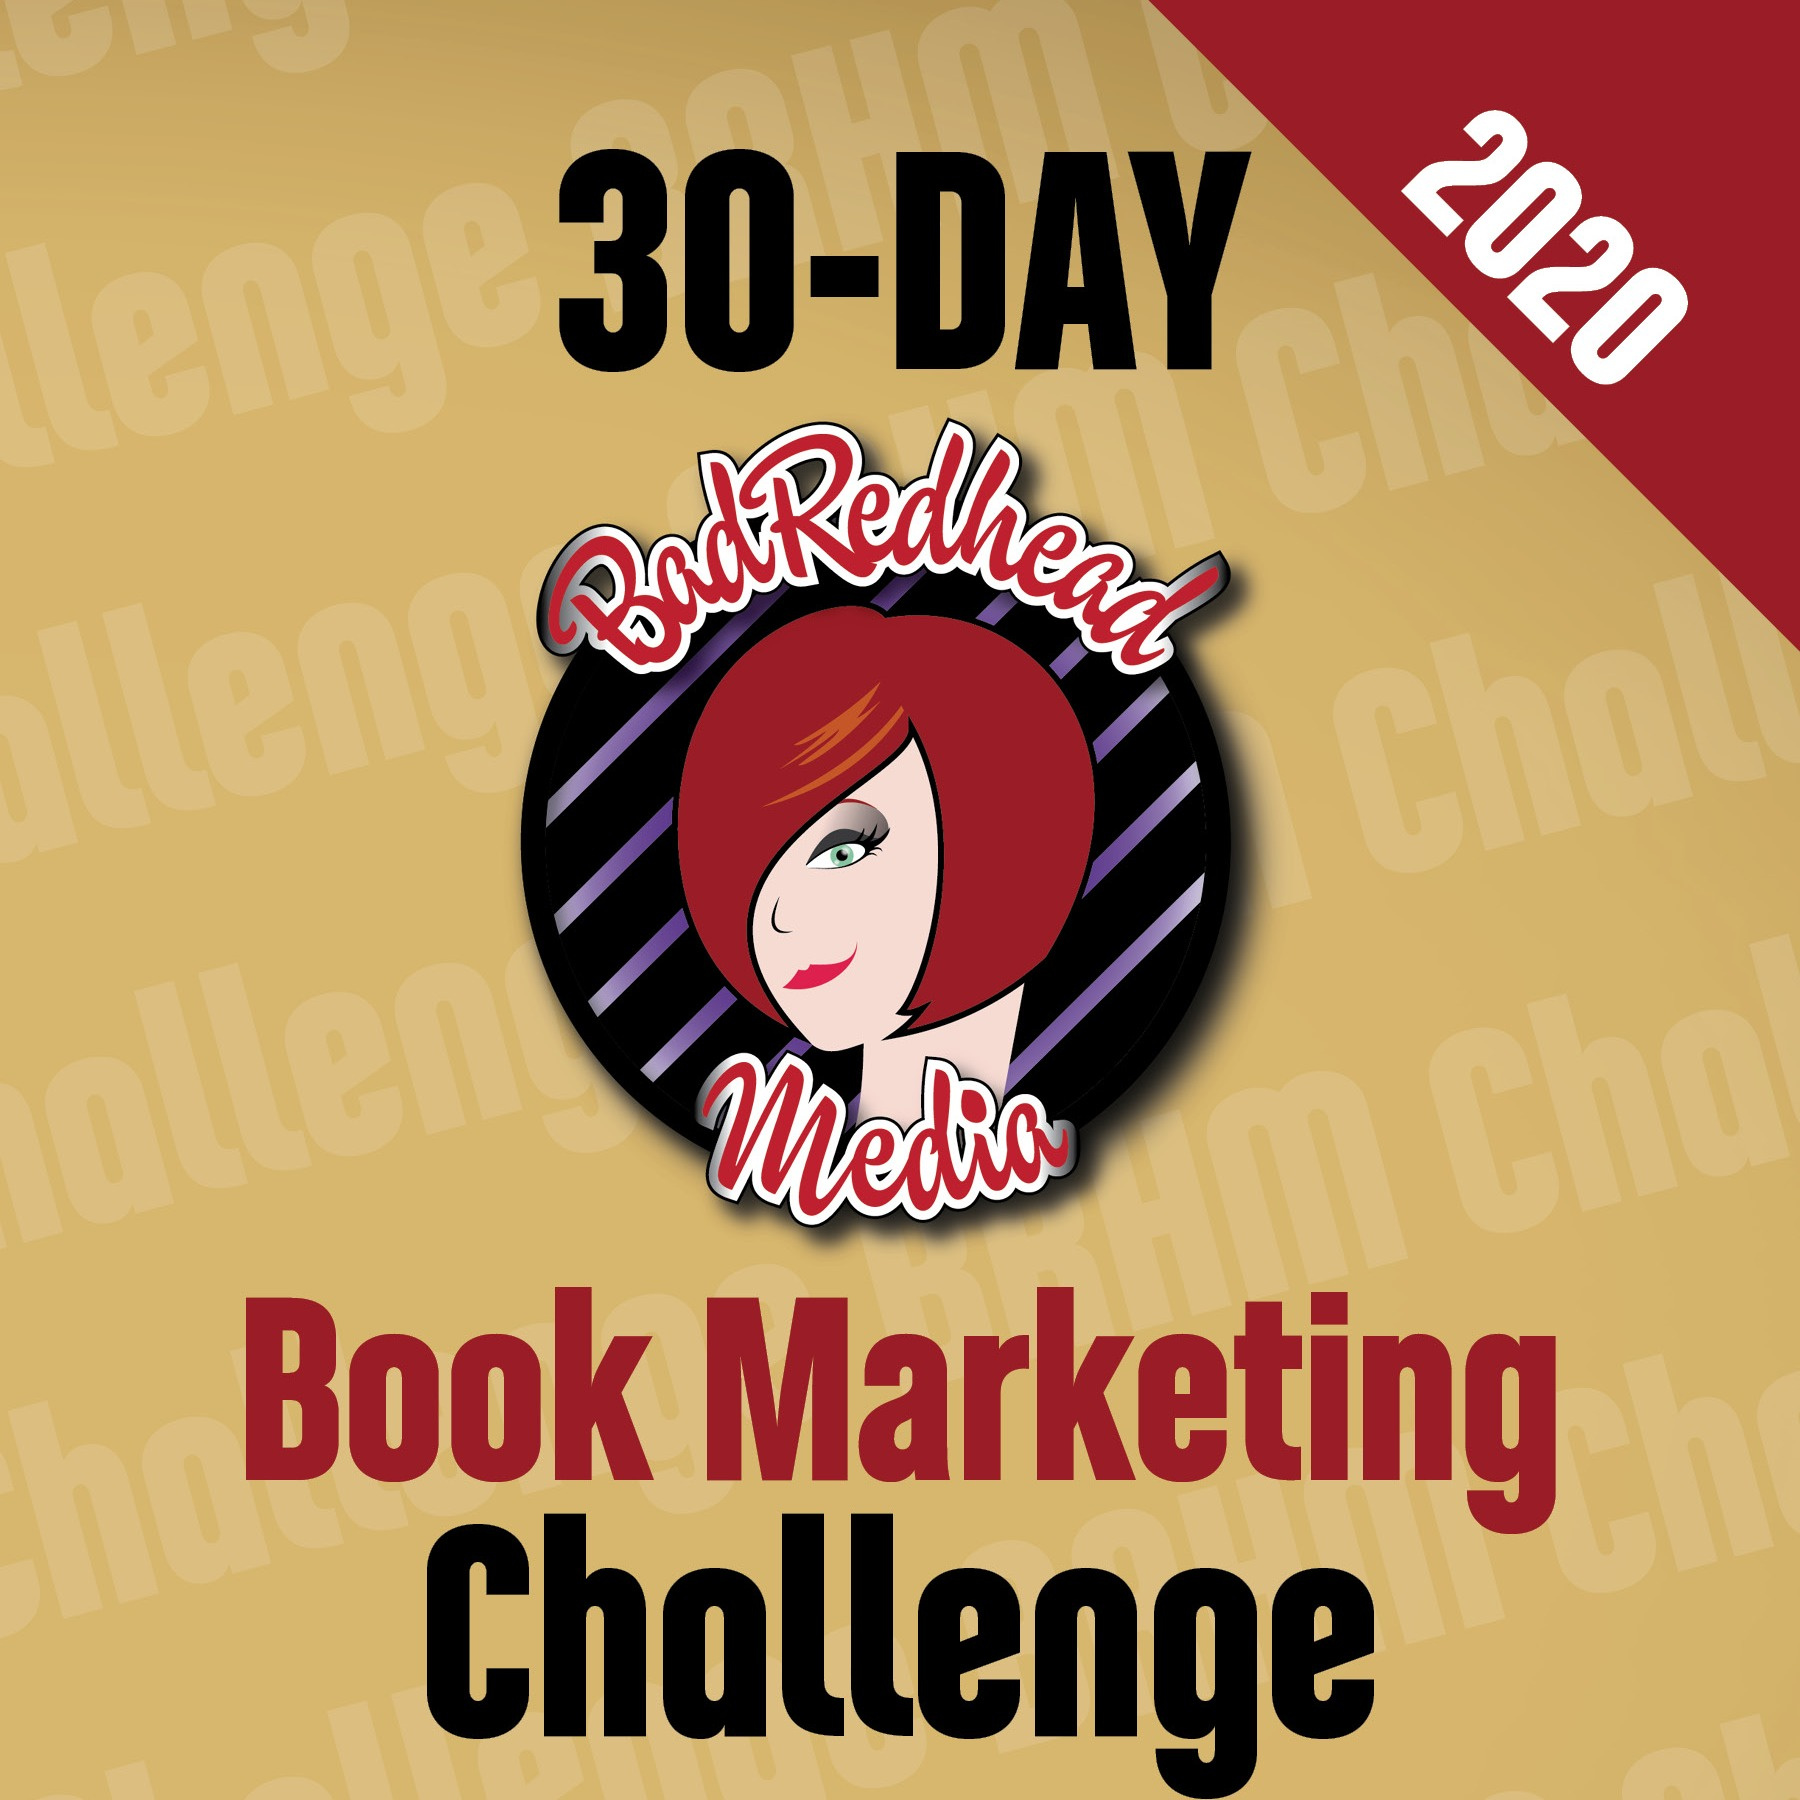 The 2020 BadRedhead Media 30-Day Book Marketing Challenge eBook - now a 'Great On Kindle' Pick!